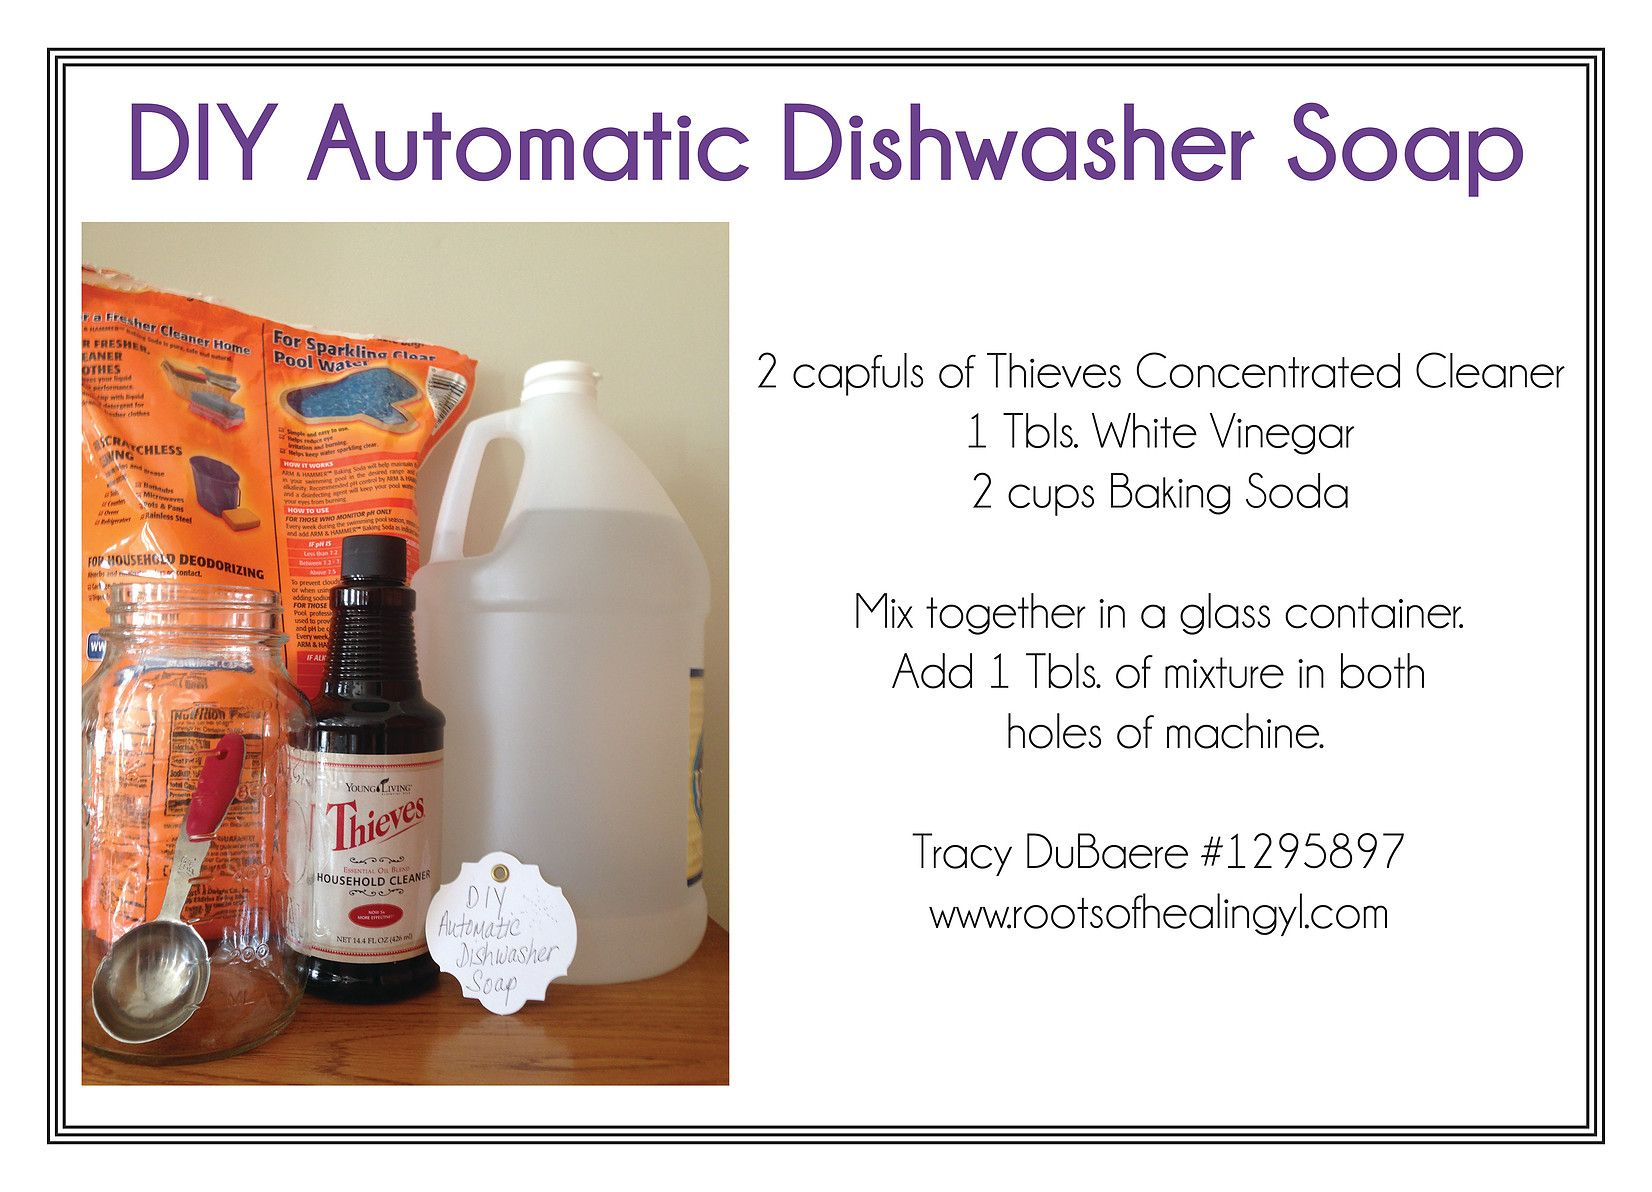 DIY Automatic Dishwasher Soap with Essential Oils